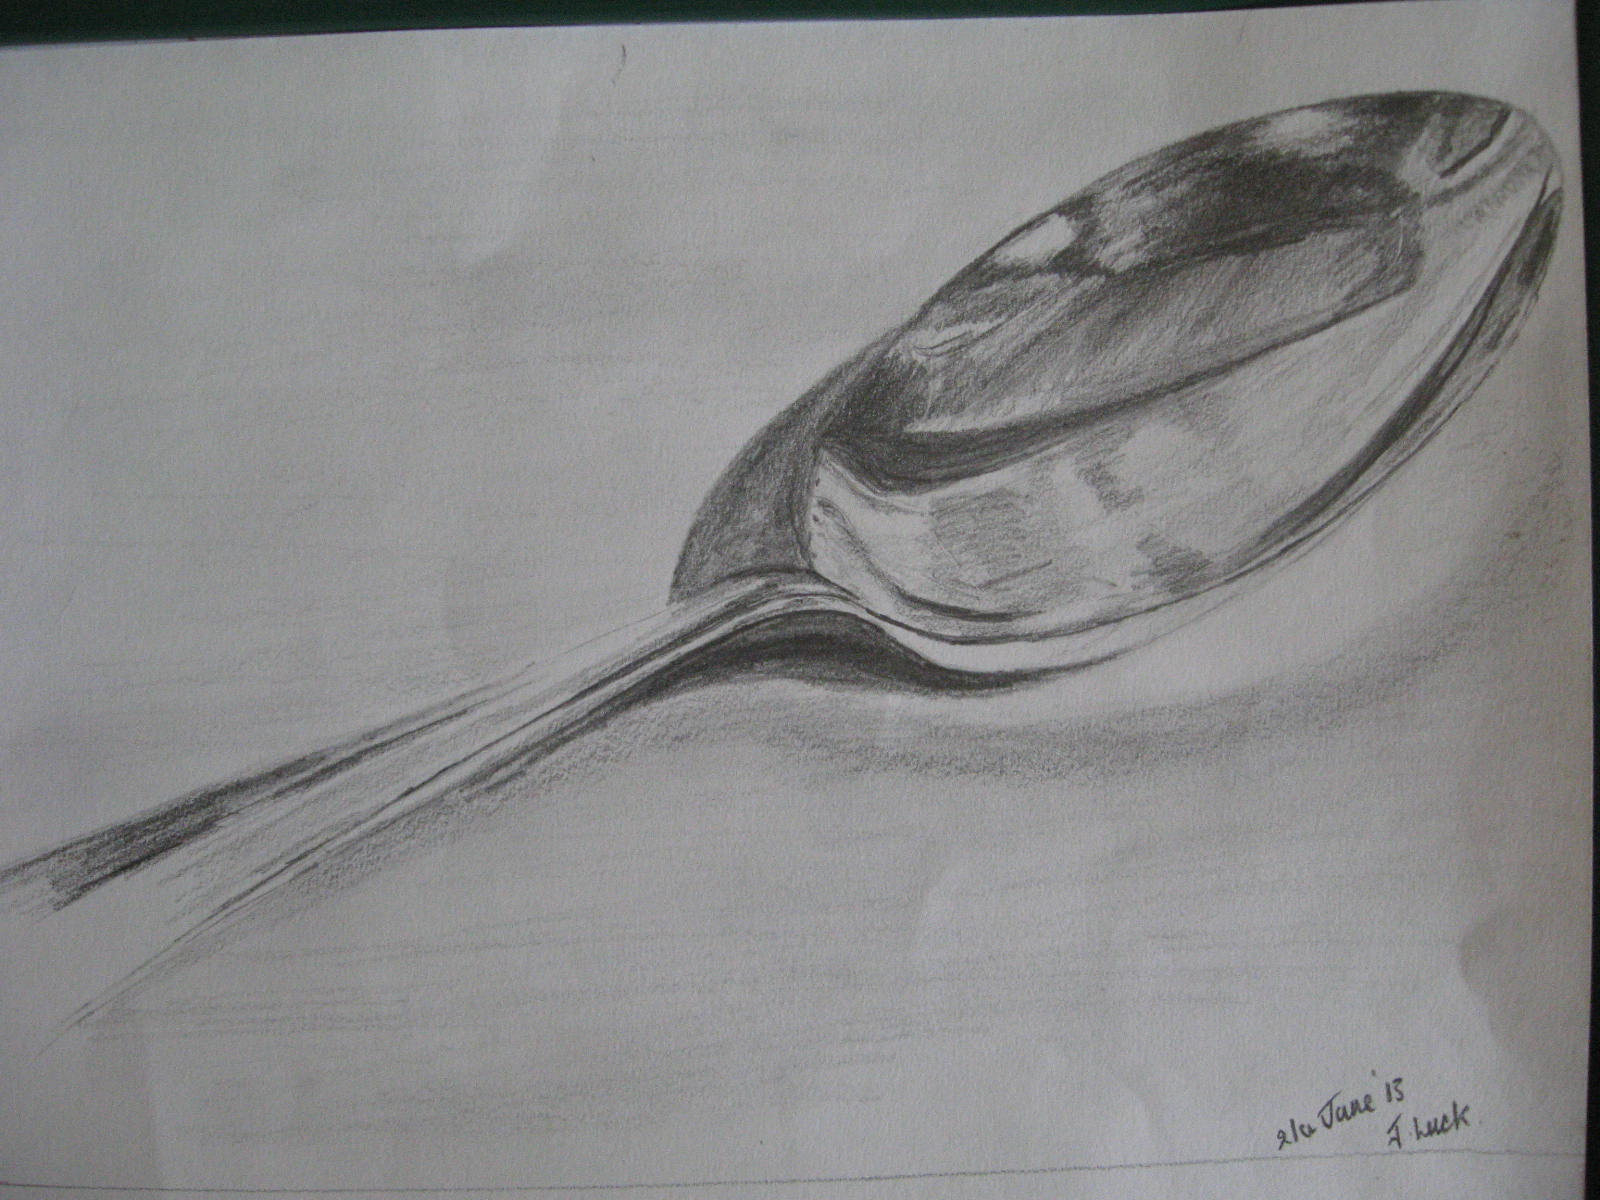 Drawn spoon pencil drawing Pencil Drawing Drawing Spoon Keyword